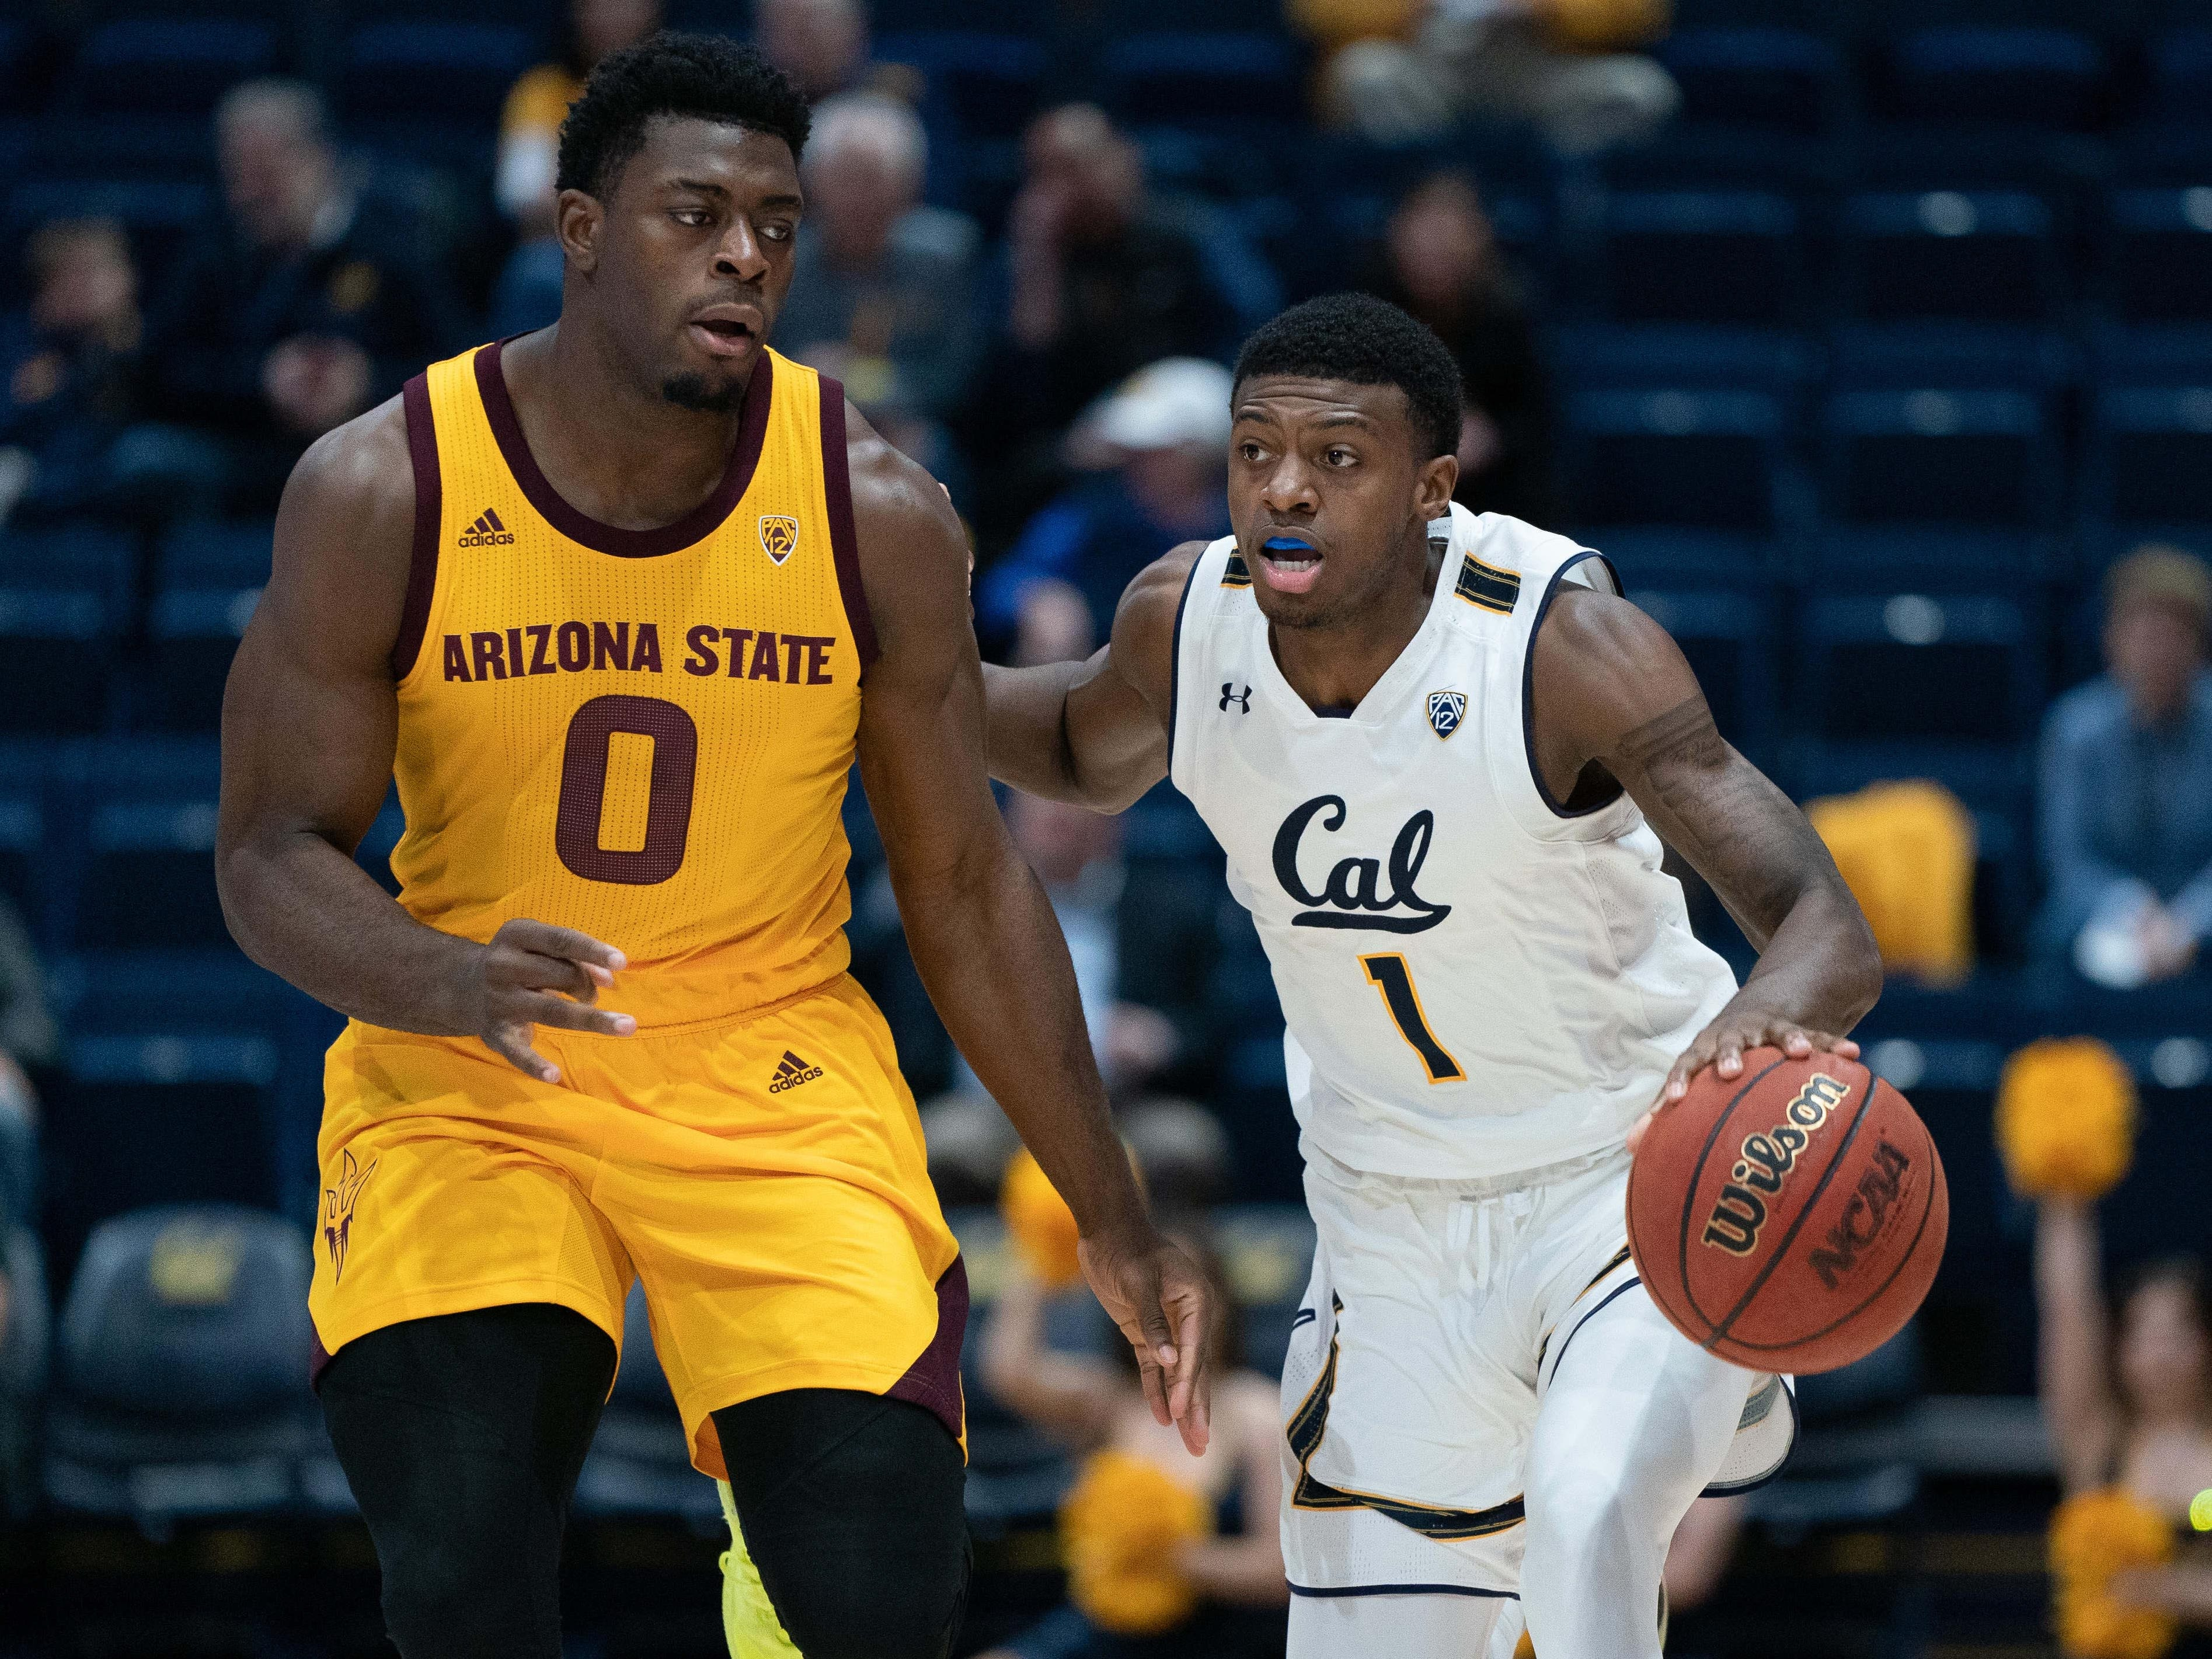 Jan 9, 2019; Berkeley, CA, USA; California Golden Bears guard Darius McNeill (1) dribbles against Arizona State Sun Devils guard Luguentz Dort (0) during the first half at Haas Pavilion. Mandatory Credit: Neville E. Guard-USA TODAY Sports